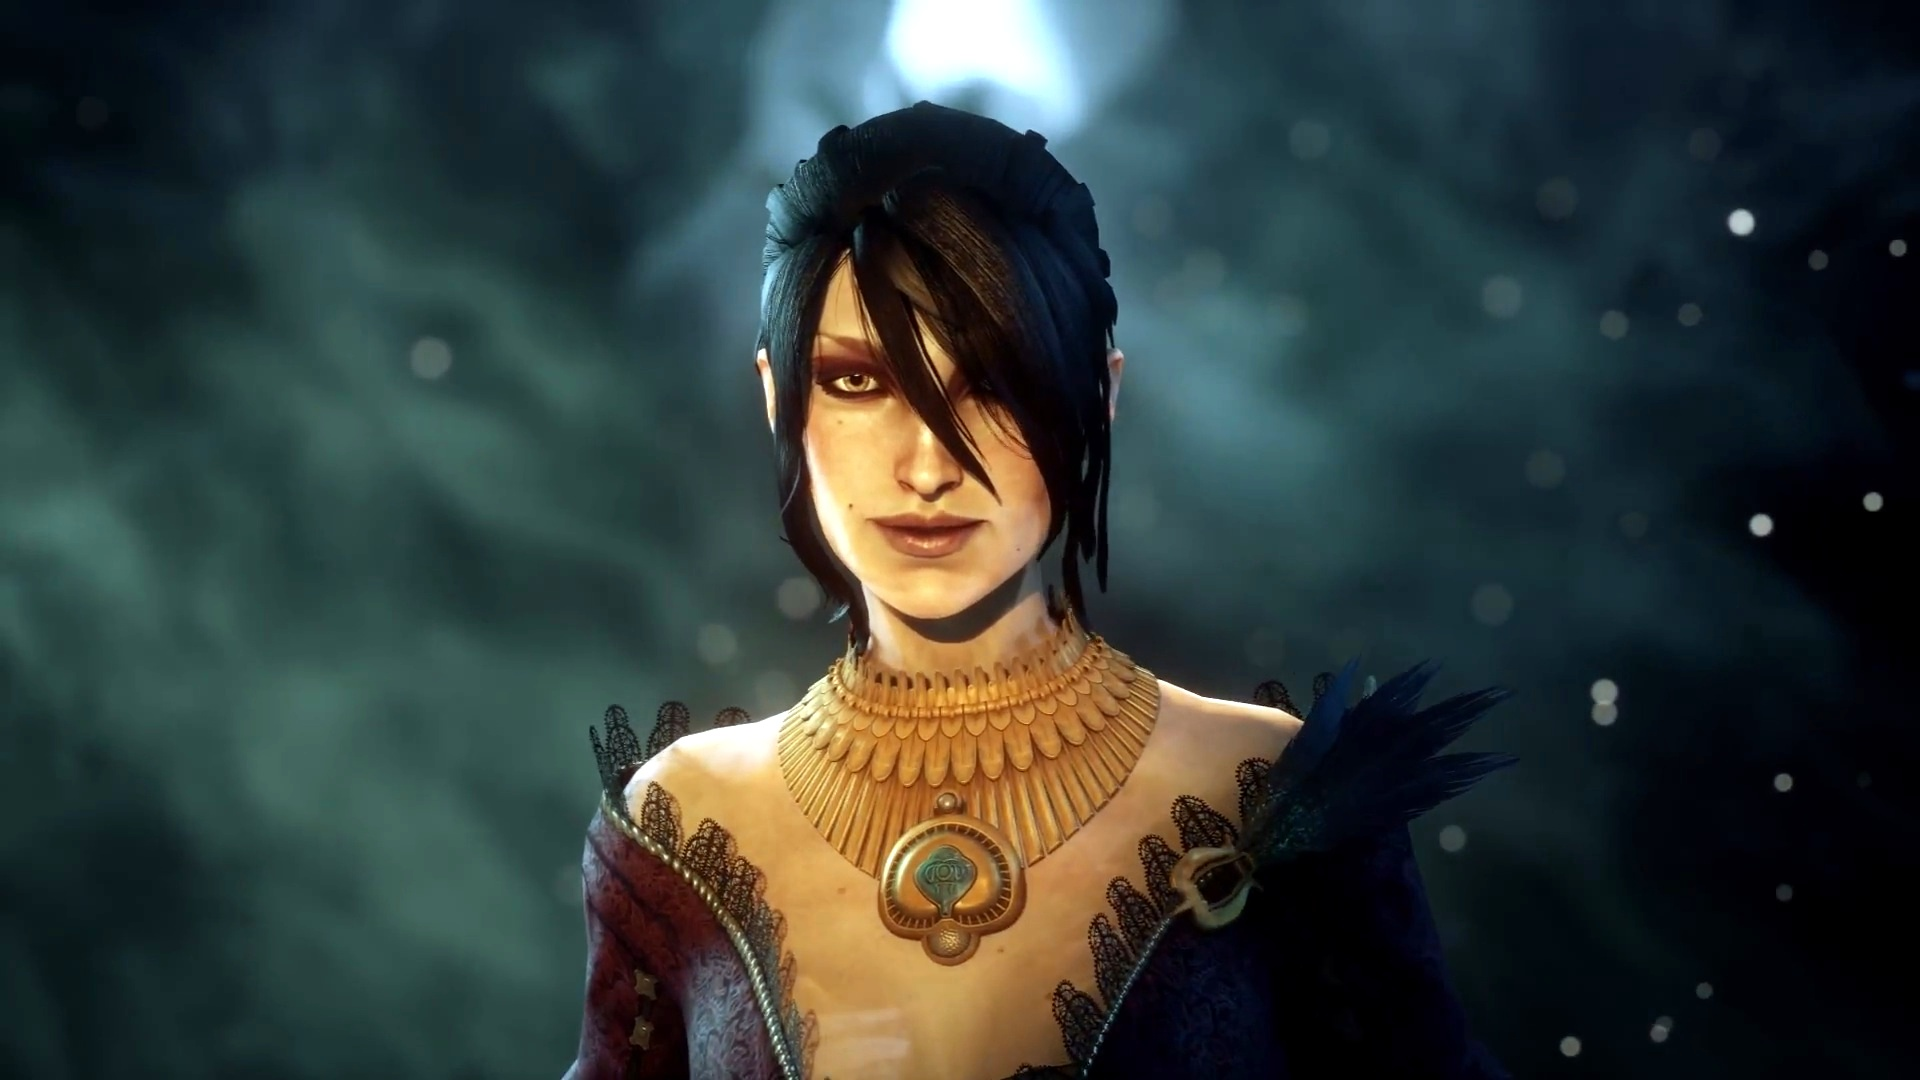 Pictures of nudity in dragon age adult movies